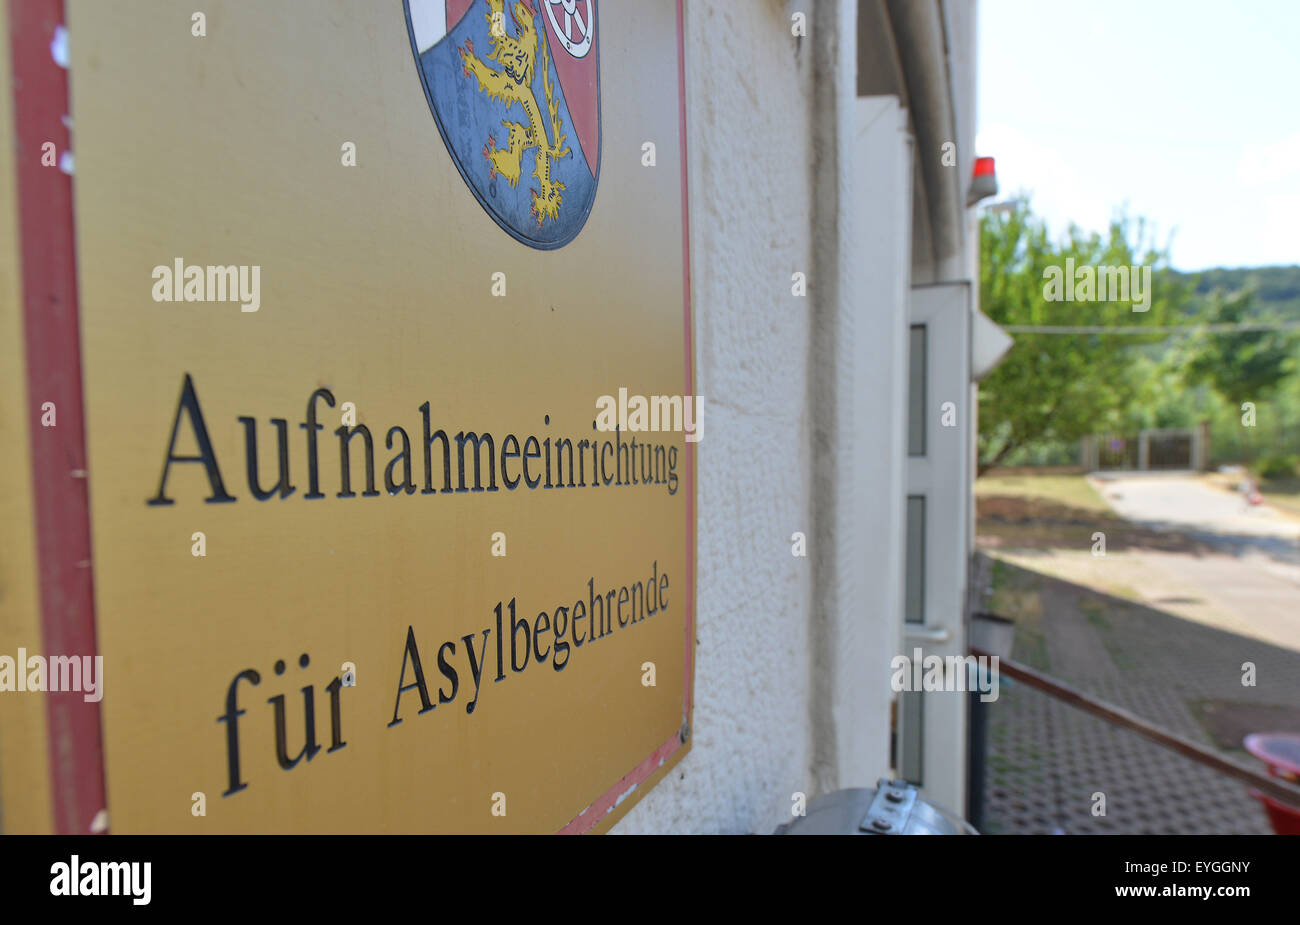 Trier, Germany. 29th July, 2015. View of a sign reading 'Aufnahmeeinrichtung fuer Asylbegehrende' (lit. reception Stock Photo